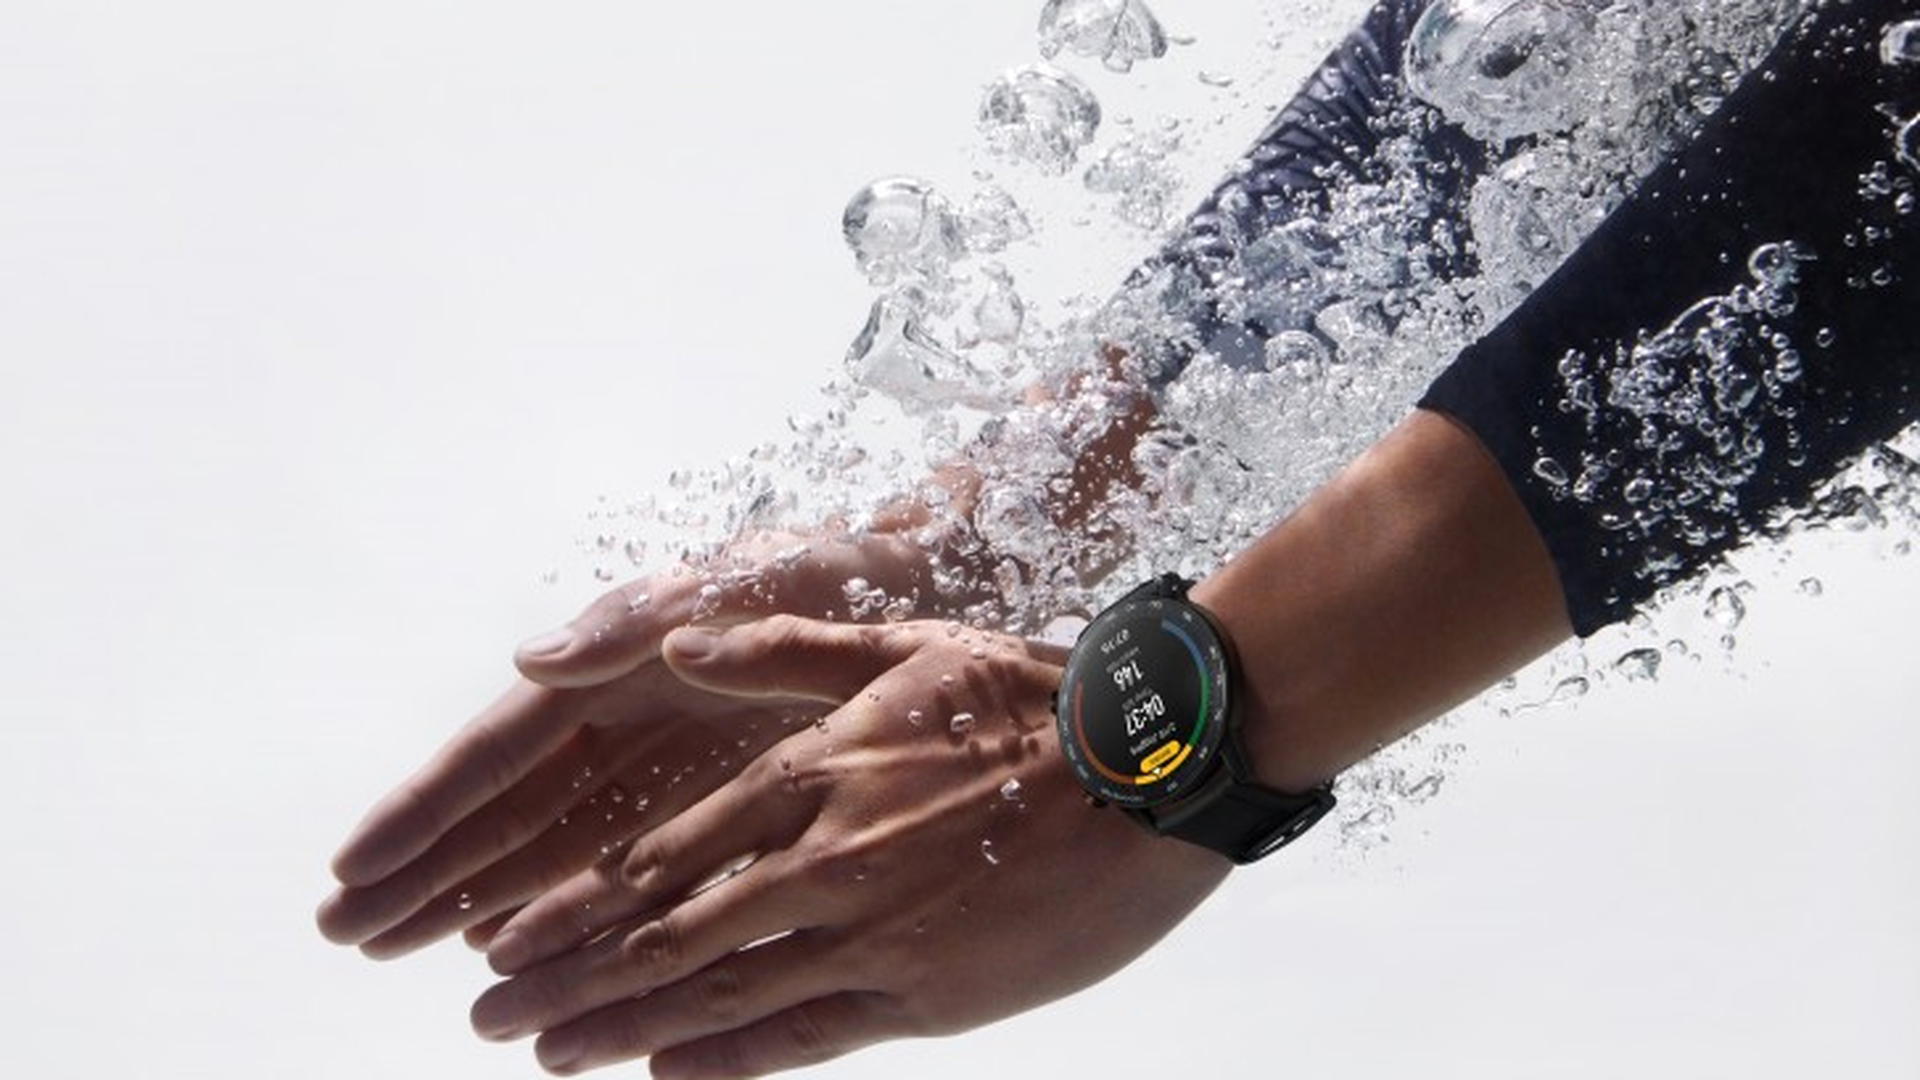 Honor introduced a smart watch for swimmers